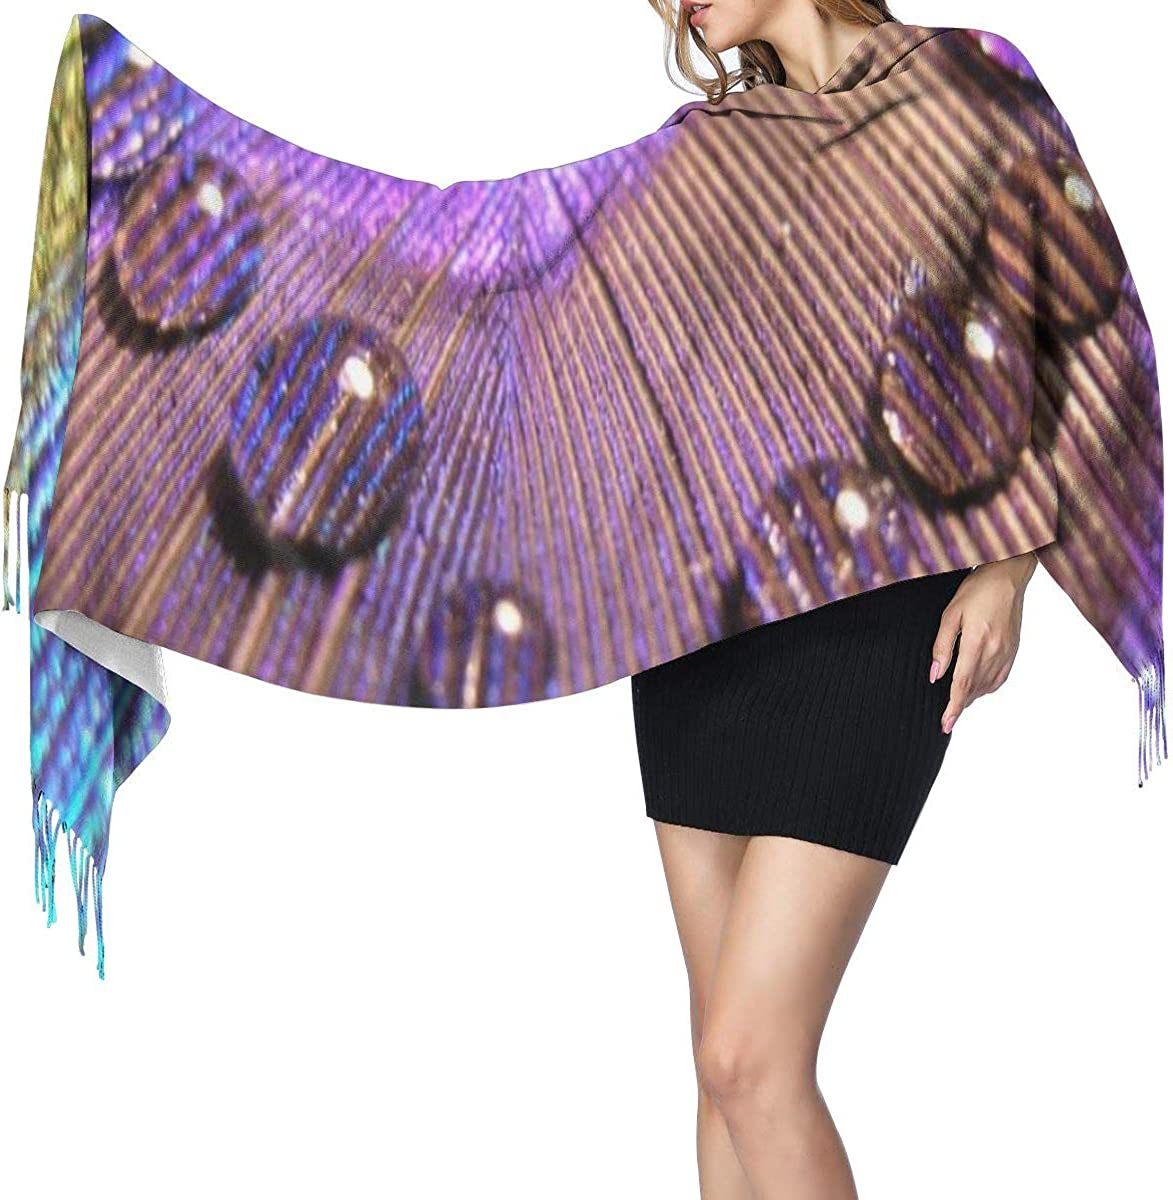 Peacock Feathers Women'S Long Shawl Scarf Winter Warm Large Lambswool Scarf